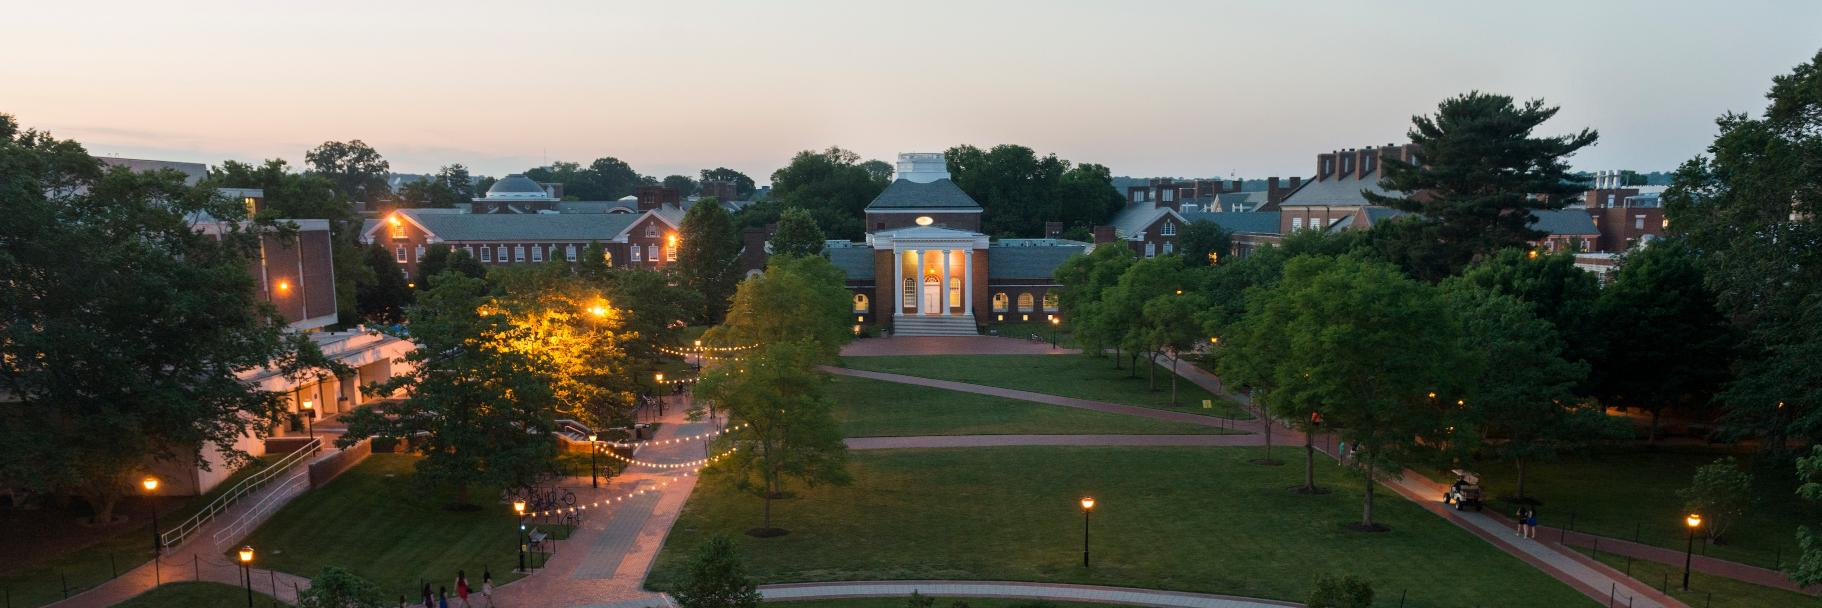 University of Delaware's official Twitter account